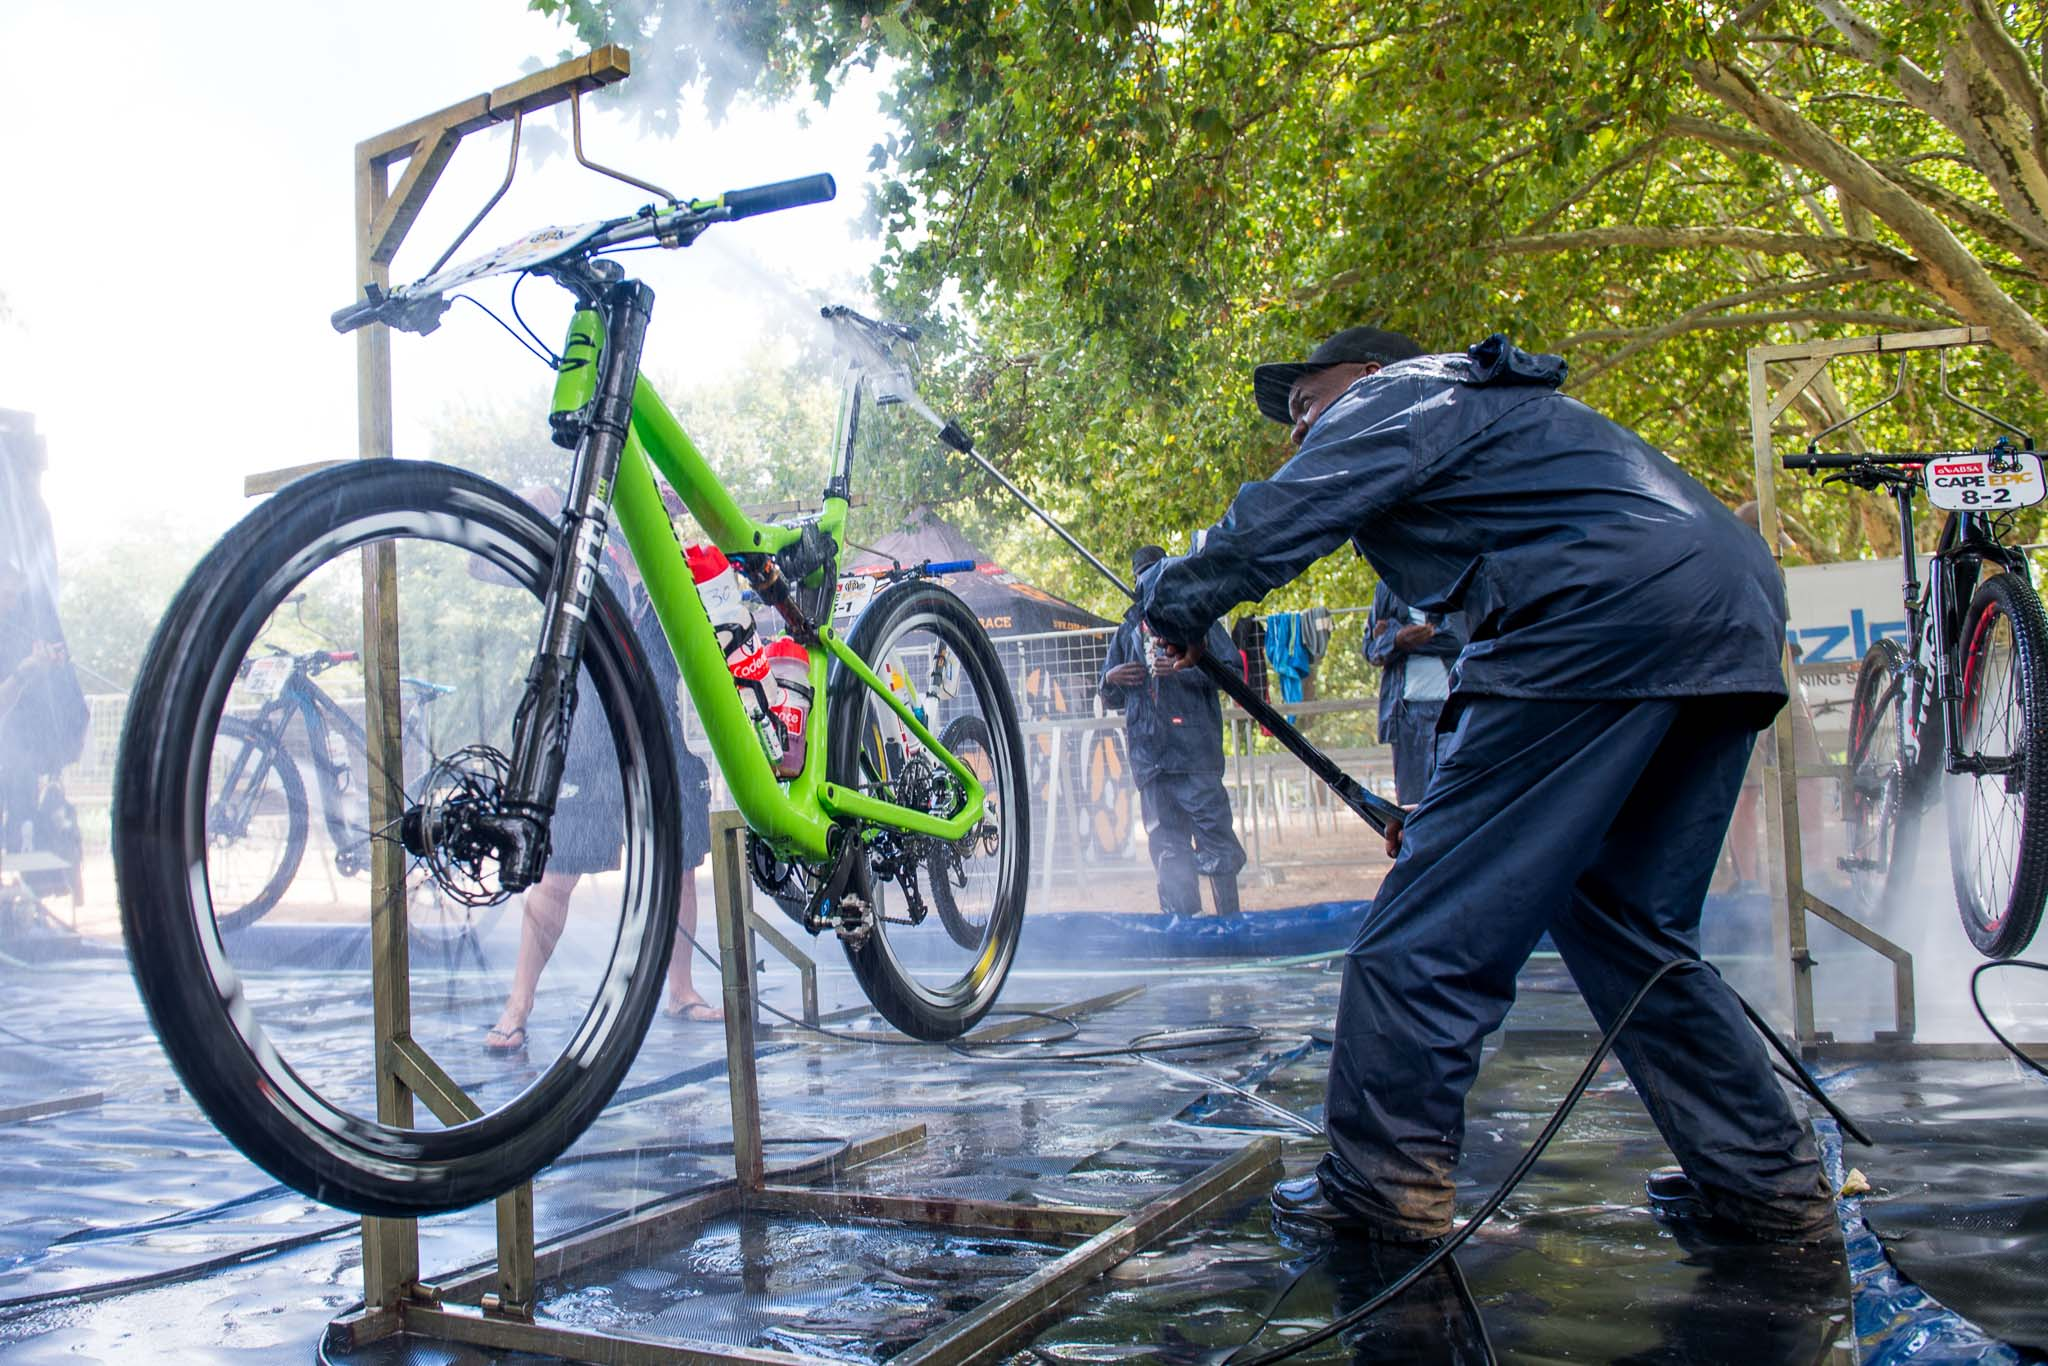 Matthew Beers of South Africa (GoPro) has his bike cleaned by the bike wash team just after arriving at Boschendal, during stage 5 of the 2016 Absa Cape Epic Mountain Bike stage race held from the Cape Peninsula University of Technology in Wellington to Boschendal in Stellenbosch, South Africa on the 18th March 2016 Photo by Emma Hill/Cape Epic/SPORTZPICS PLEASE ENSURE THE APPROPRIATE CREDIT IS GIVEN TO THE PHOTOGRAPHER AND SPORTZPICS ALONG WITH THE ABSA CAPE EPIC ace2016